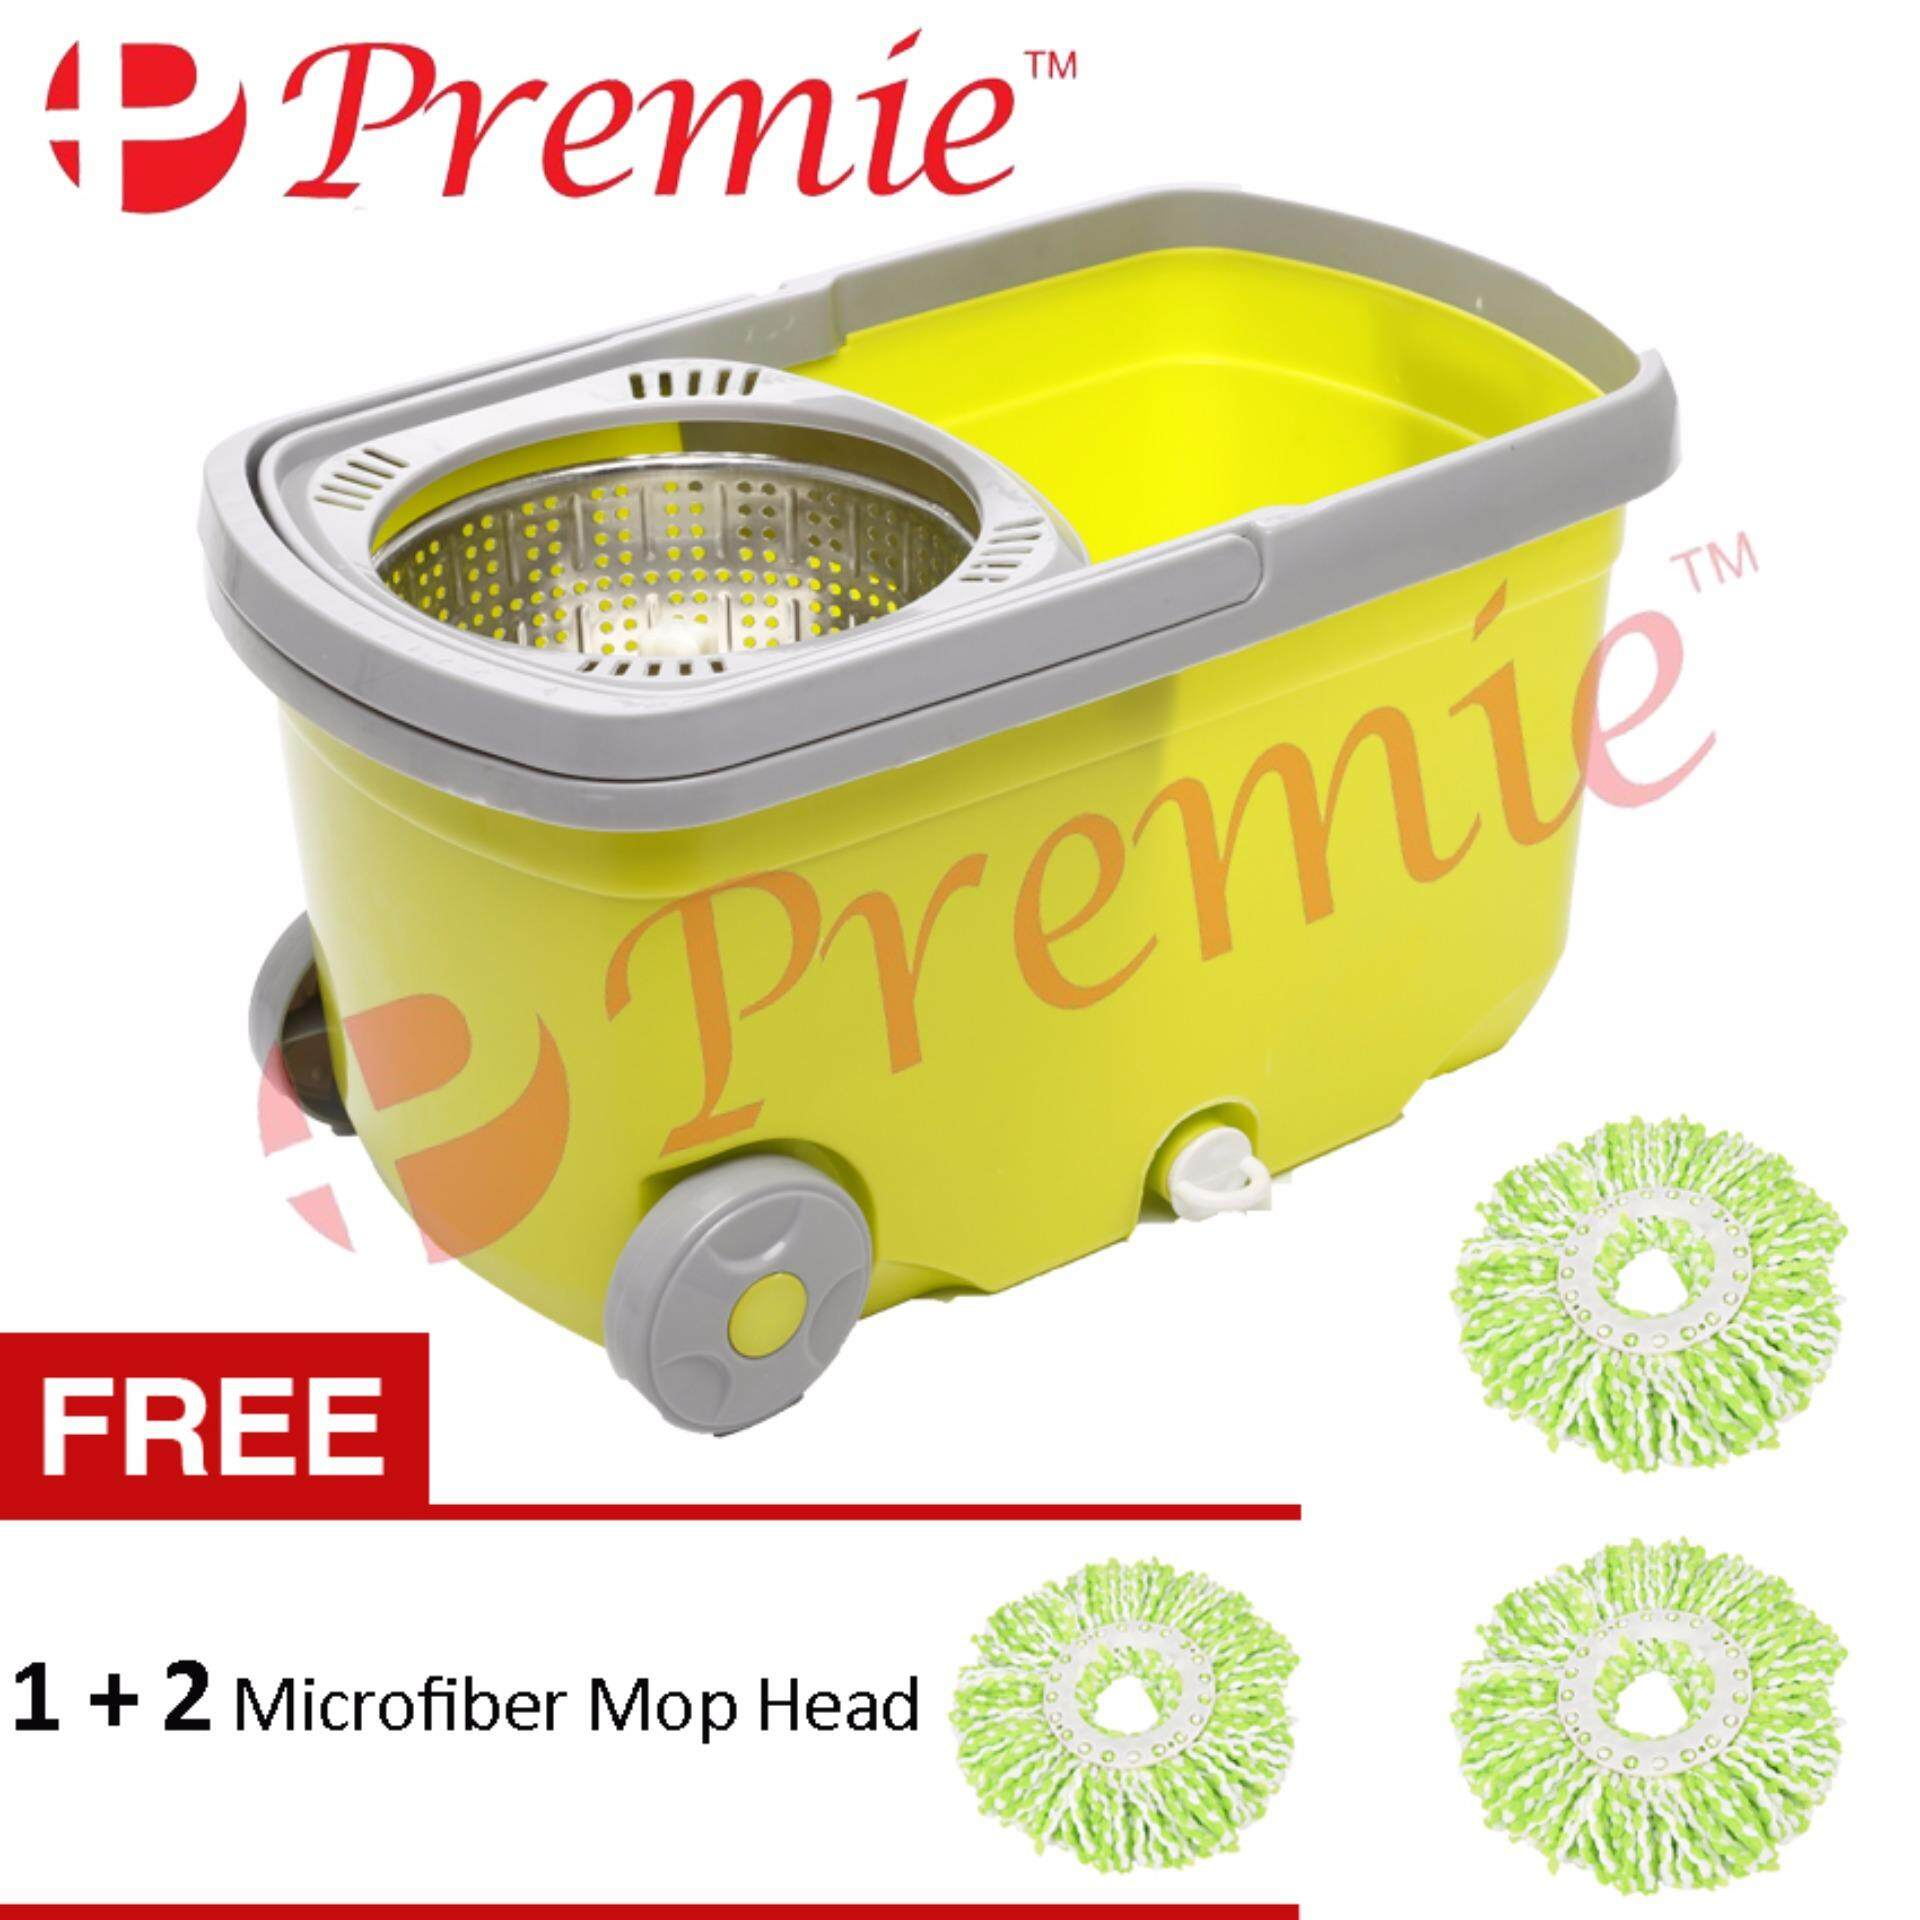 premie easy magic spin mop stainless steel rotation dryer cleaner bucket with wheel free 21 green mop headgreen lazada malaysia